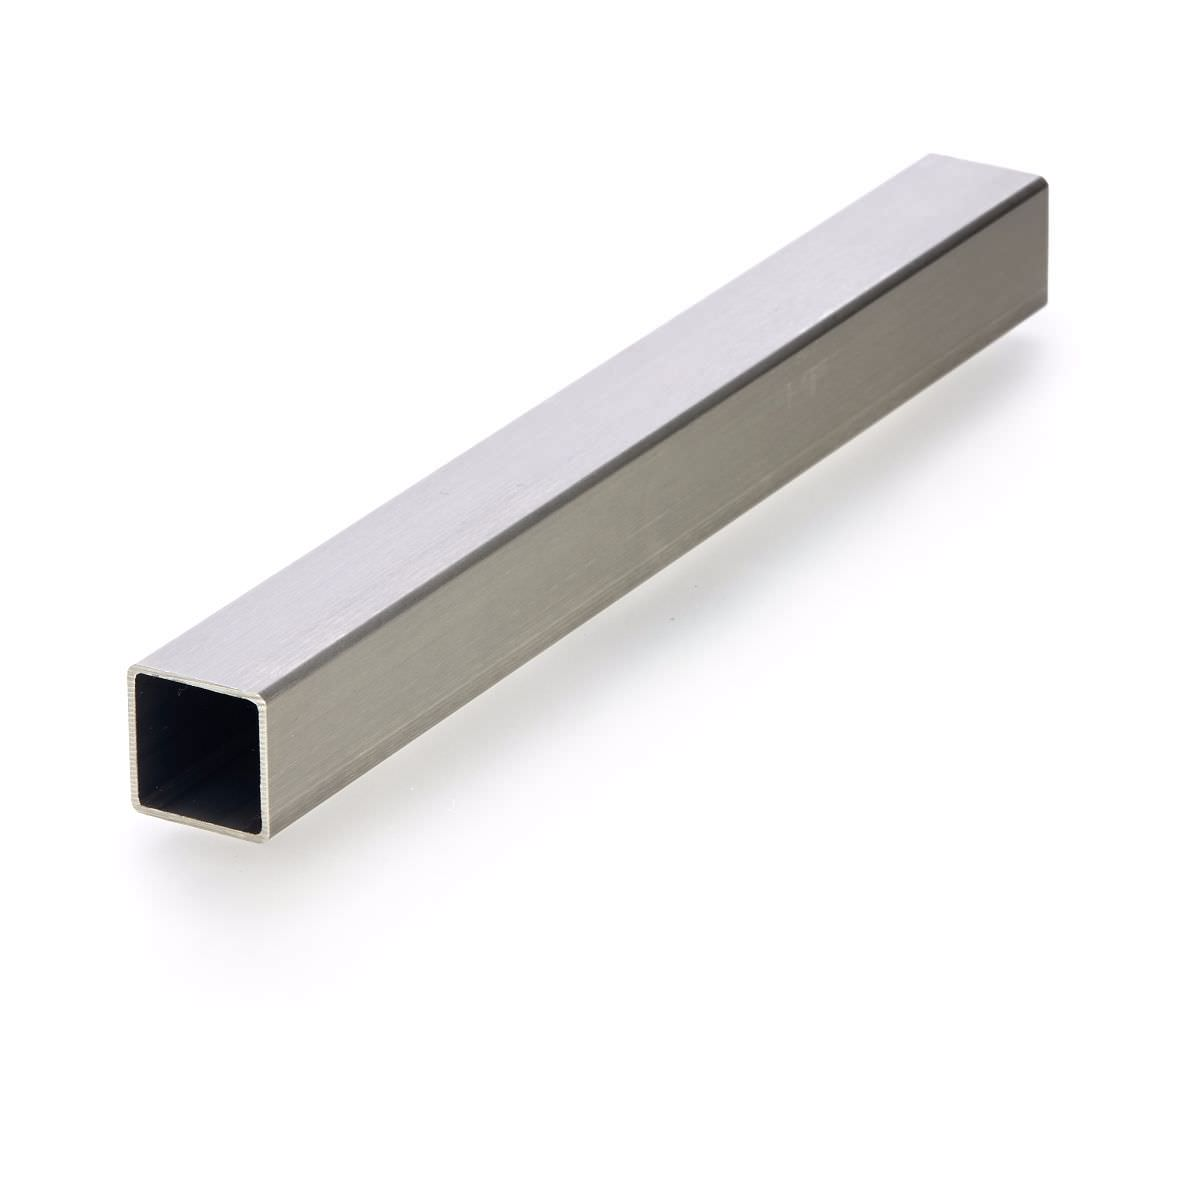 Stainless steel box section